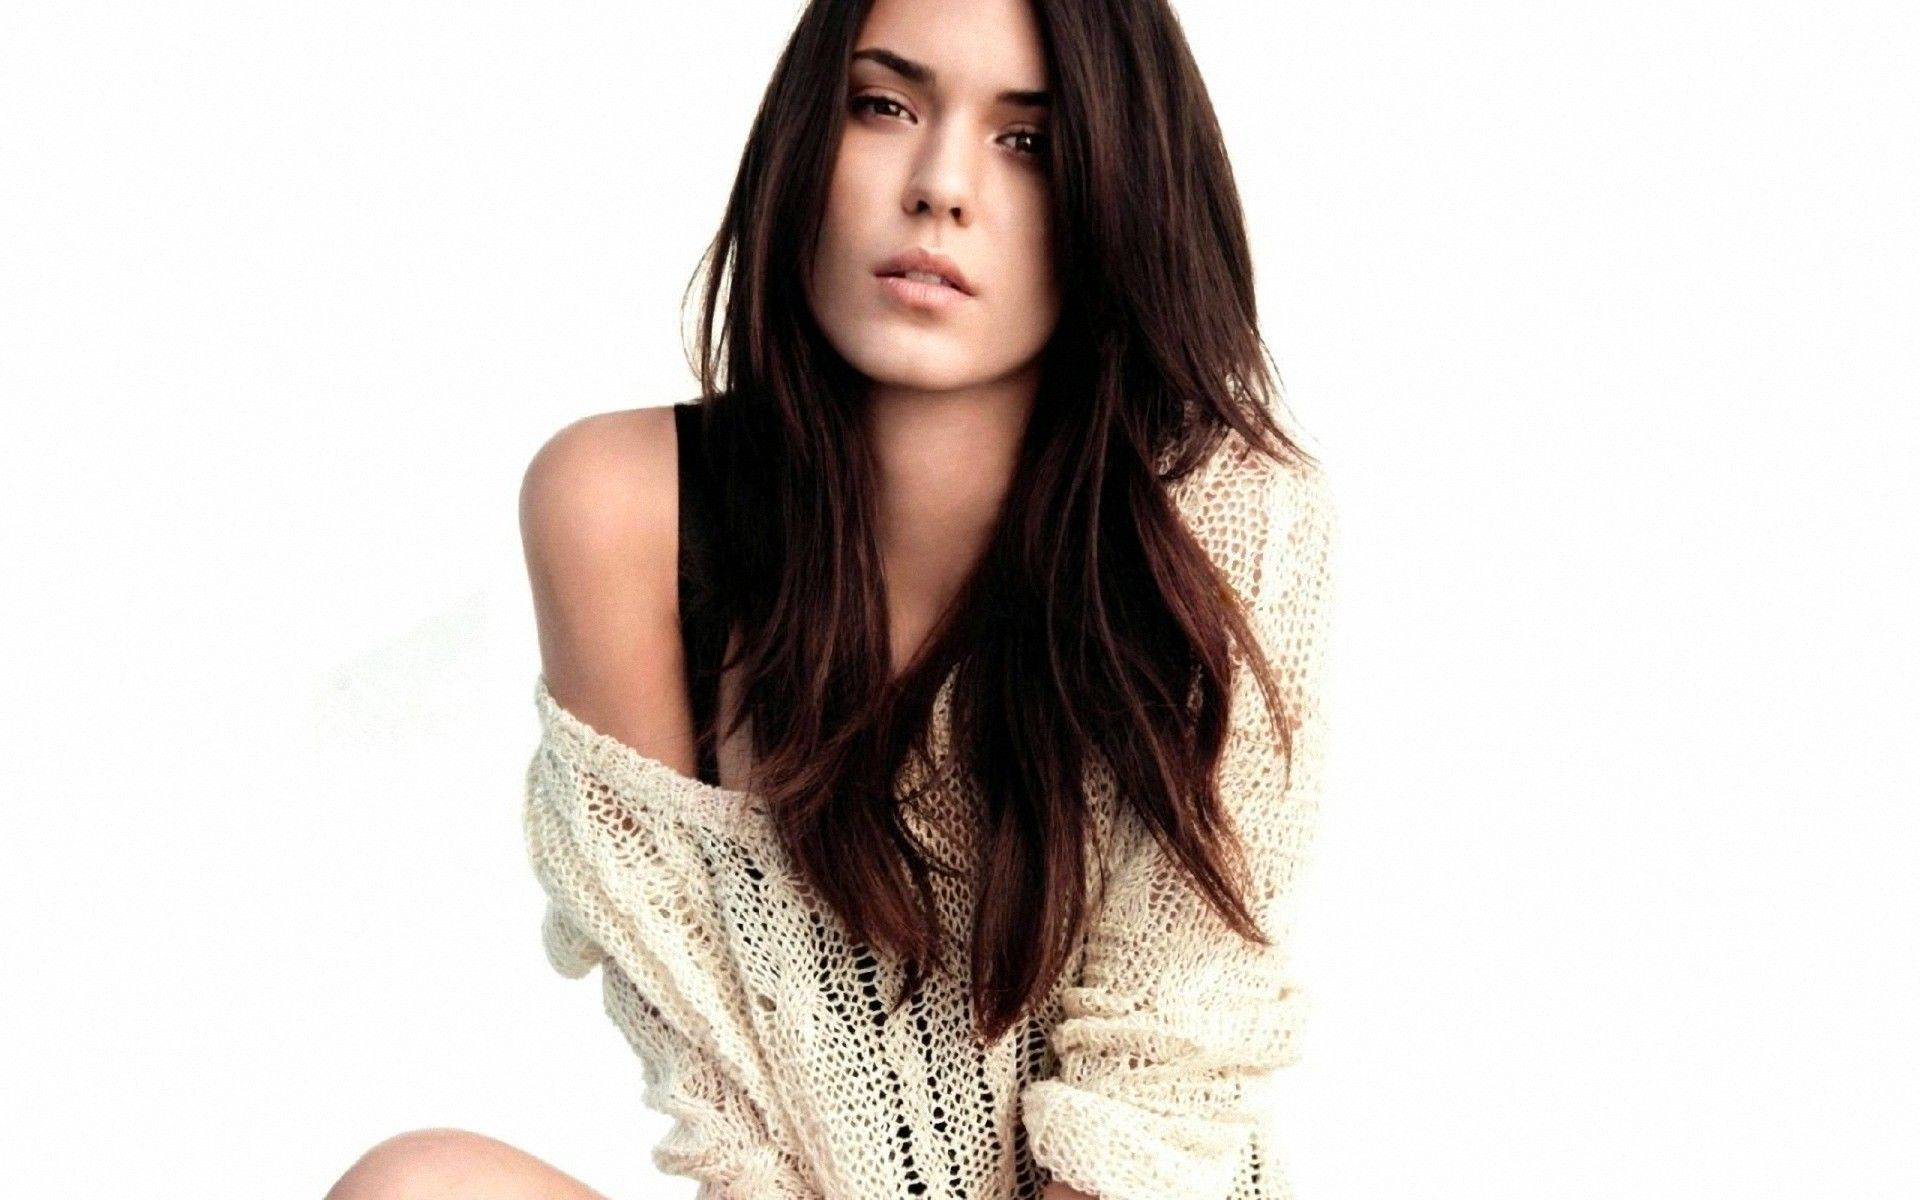 Large Odette Annable Wallpapers ...